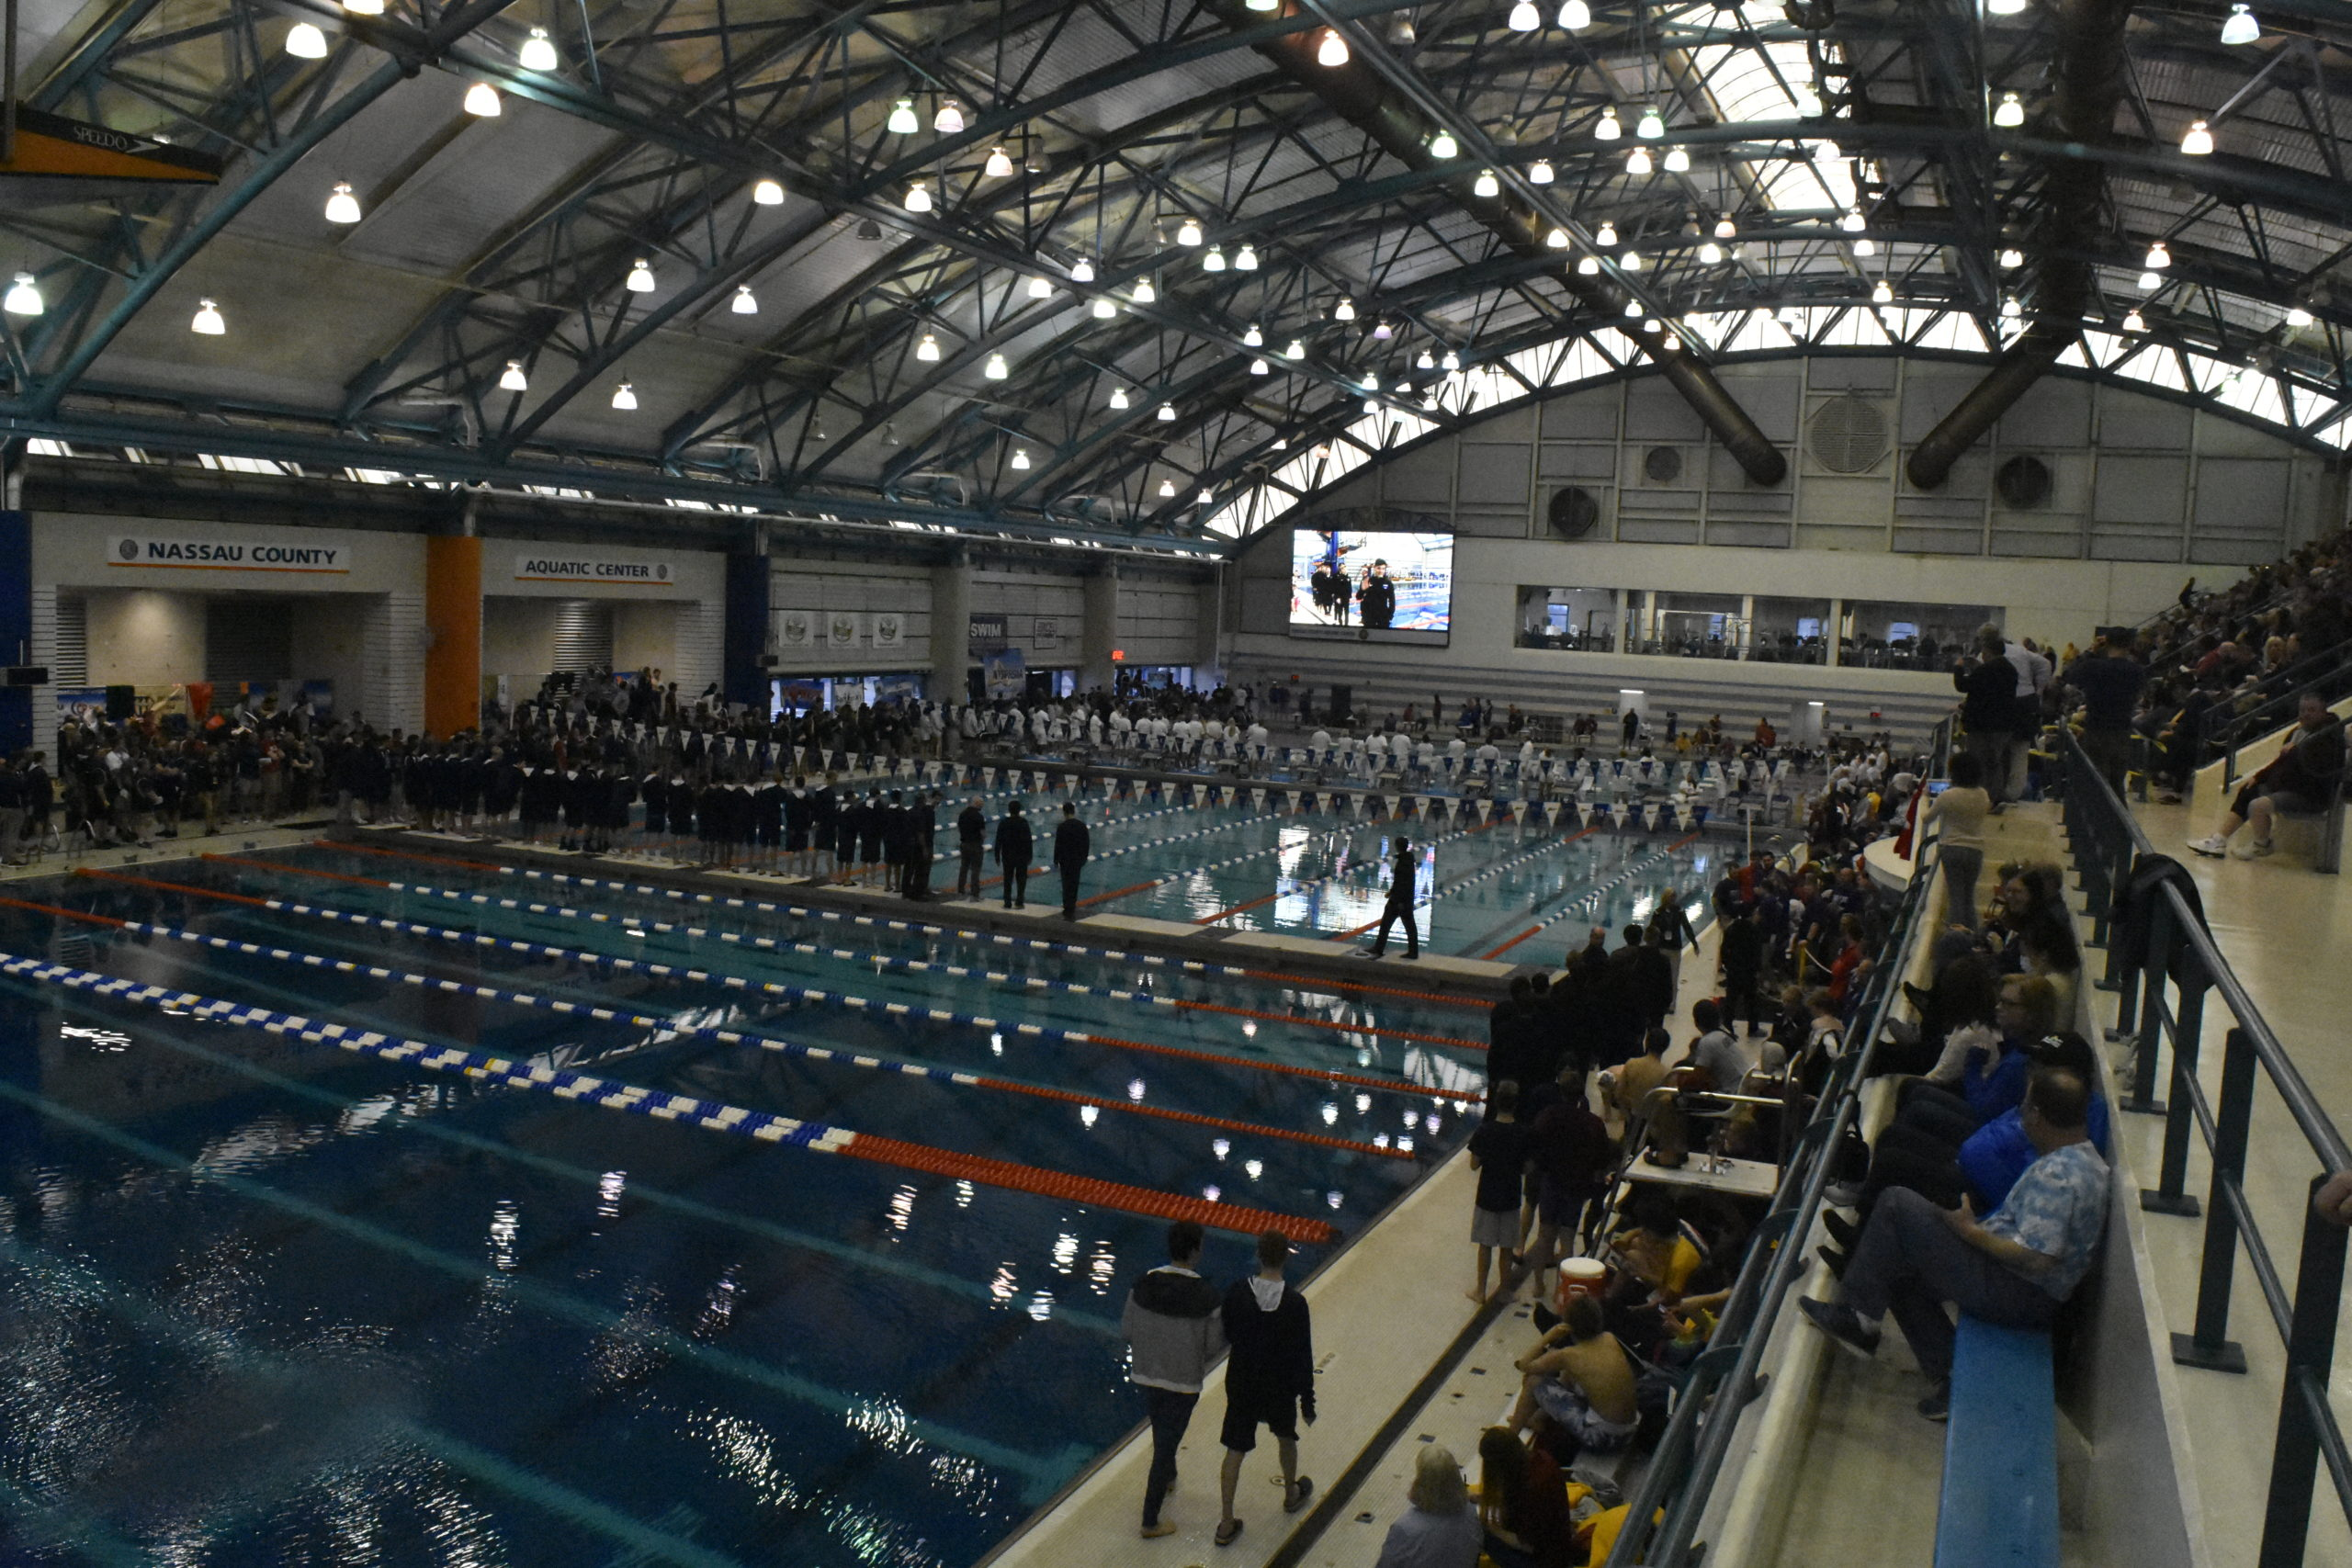 The New York State Swimming Championships were held at the Nassau County Aquatic Center in East Meadow on Friday and Saturday.